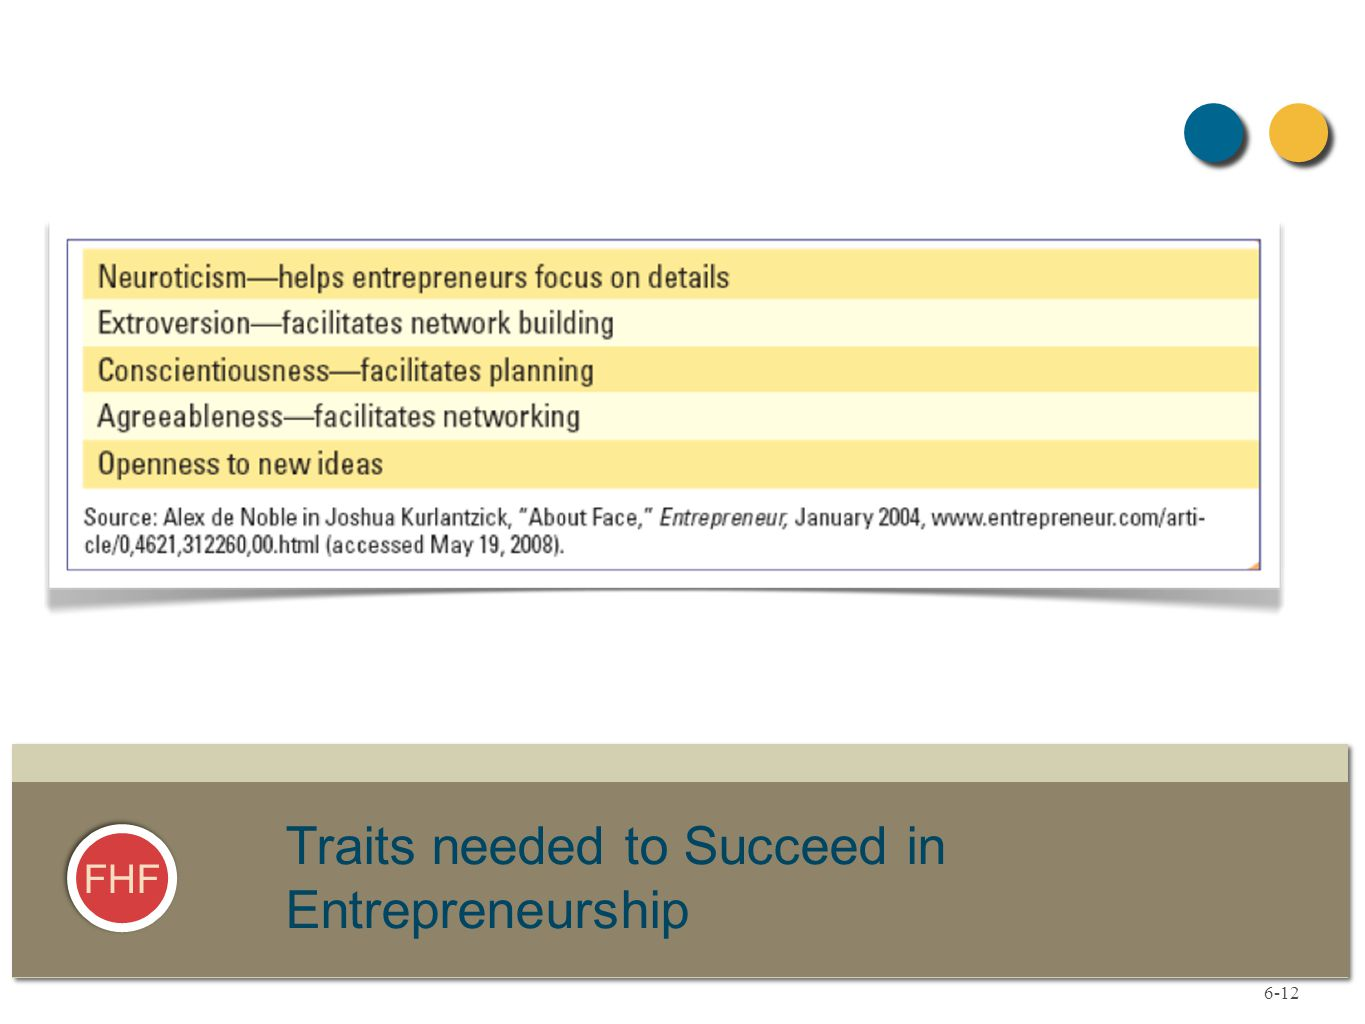 FHF Traits needed to Succeed in Entrepreneurship 6-12